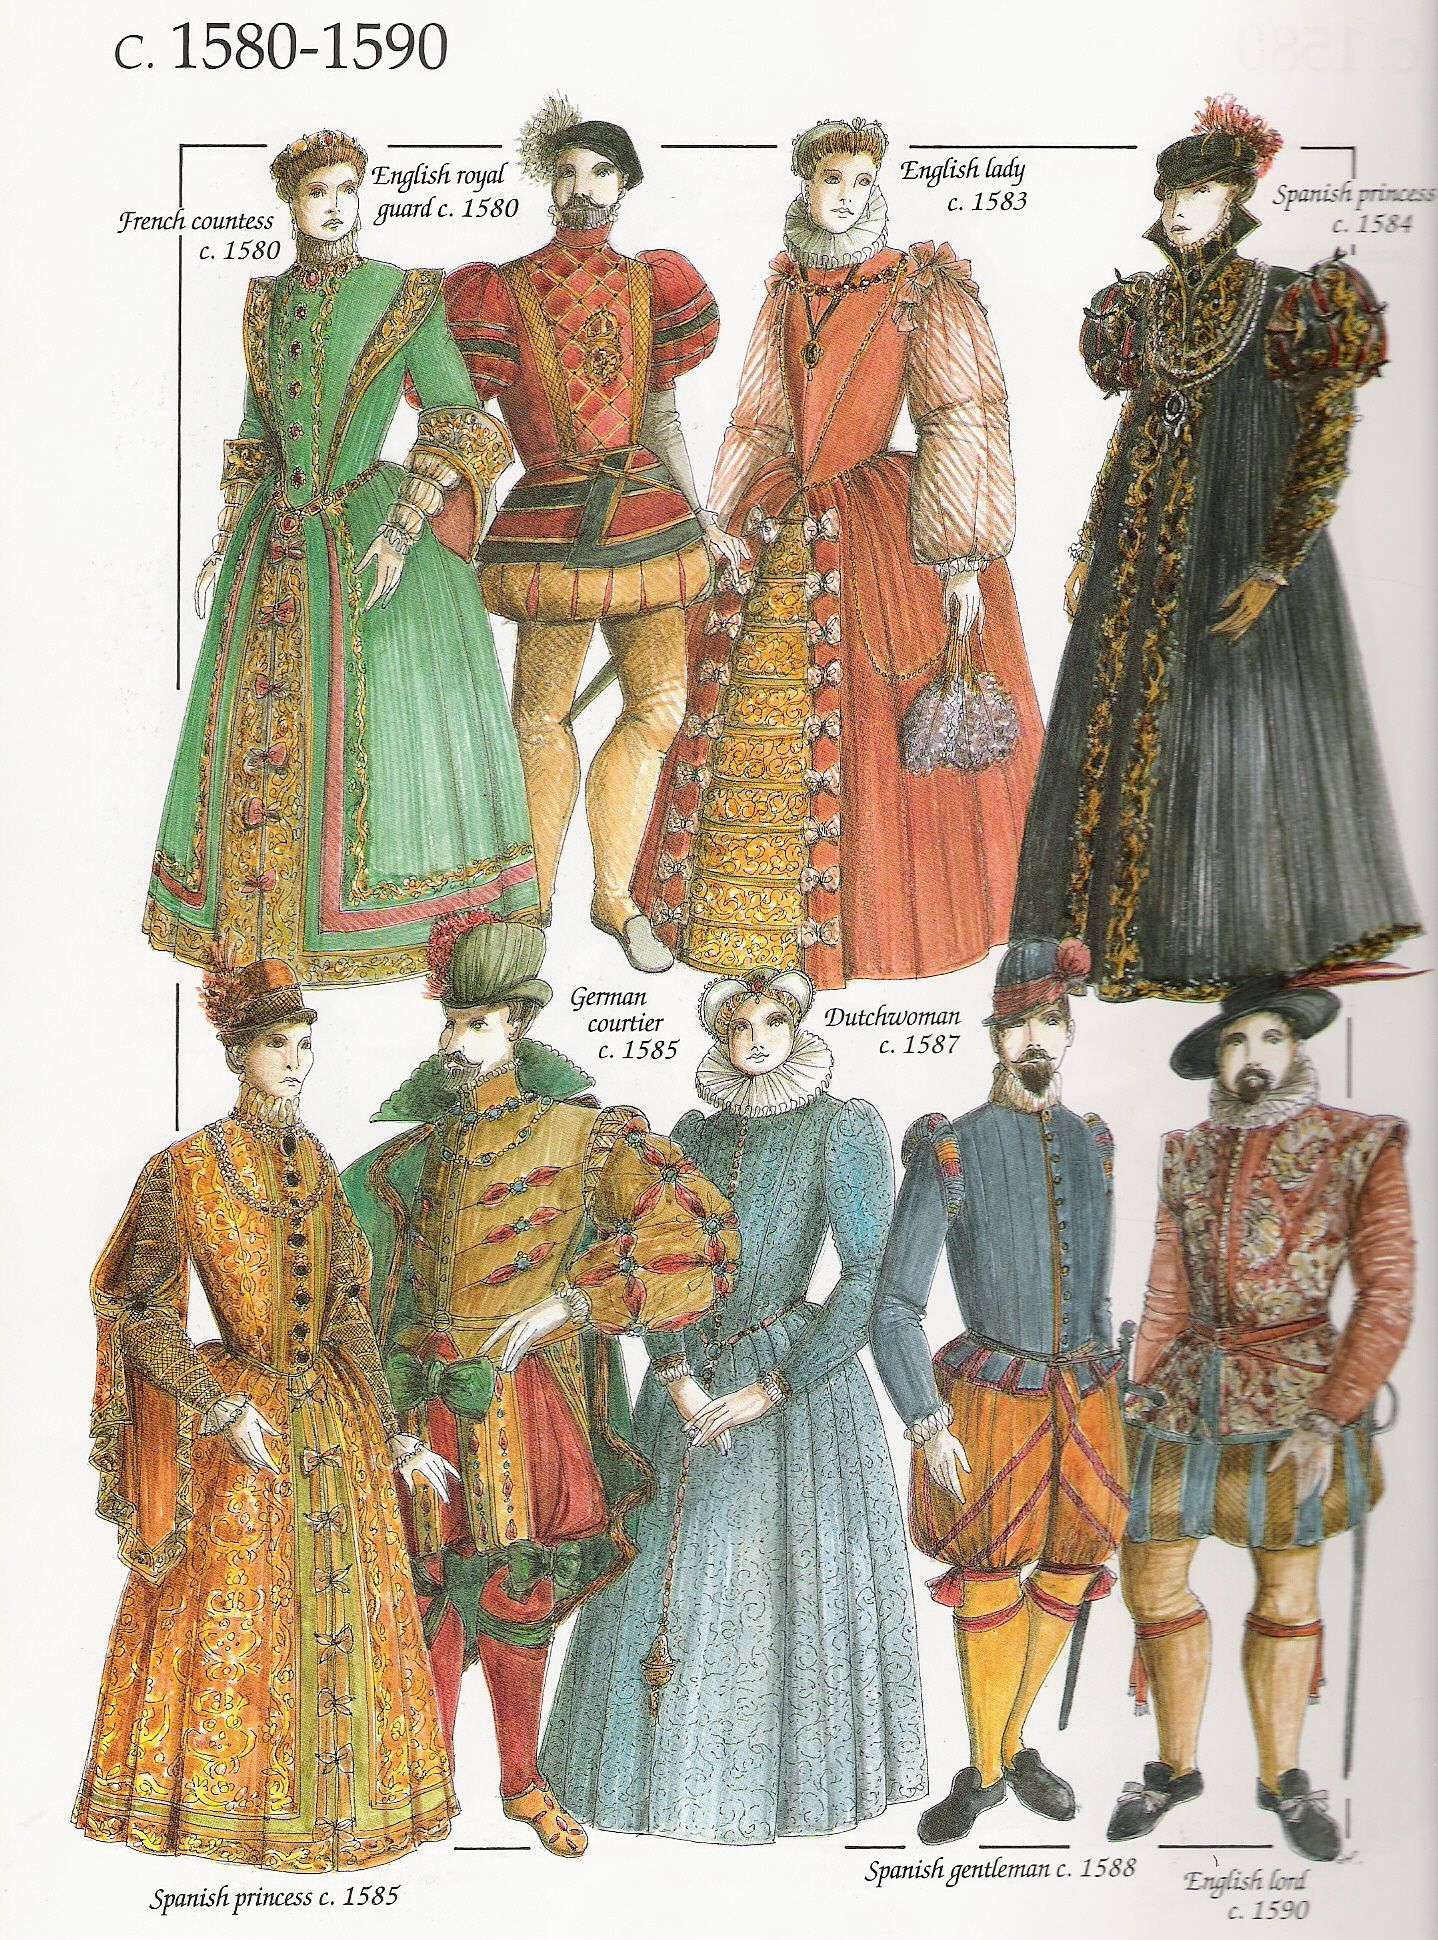 elizabethan costumes You searched for: elizabethan costume etsy is the home to thousands of handmade, vintage, and one-of-a-kind products and gifts related to your search no matter what you're looking for or where you are in the world, our global marketplace of sellers can help you find unique and affordable options.